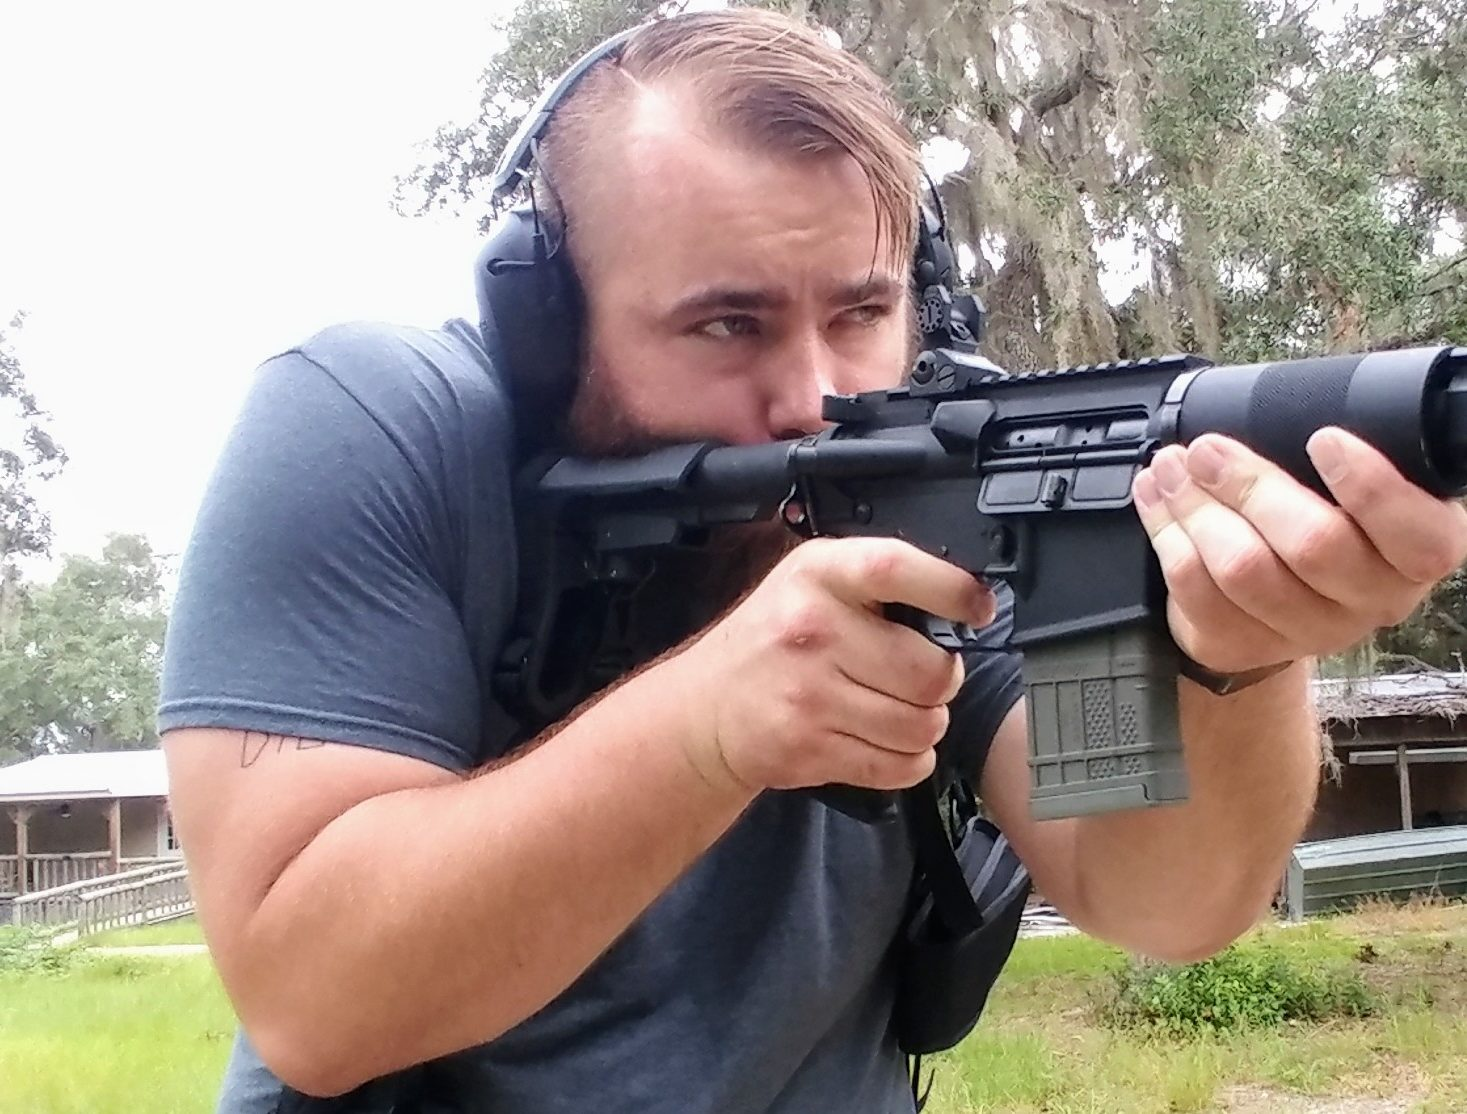 The Desantis DSD Rig | An AR-15 Shoulder Rig | The Loadout Room